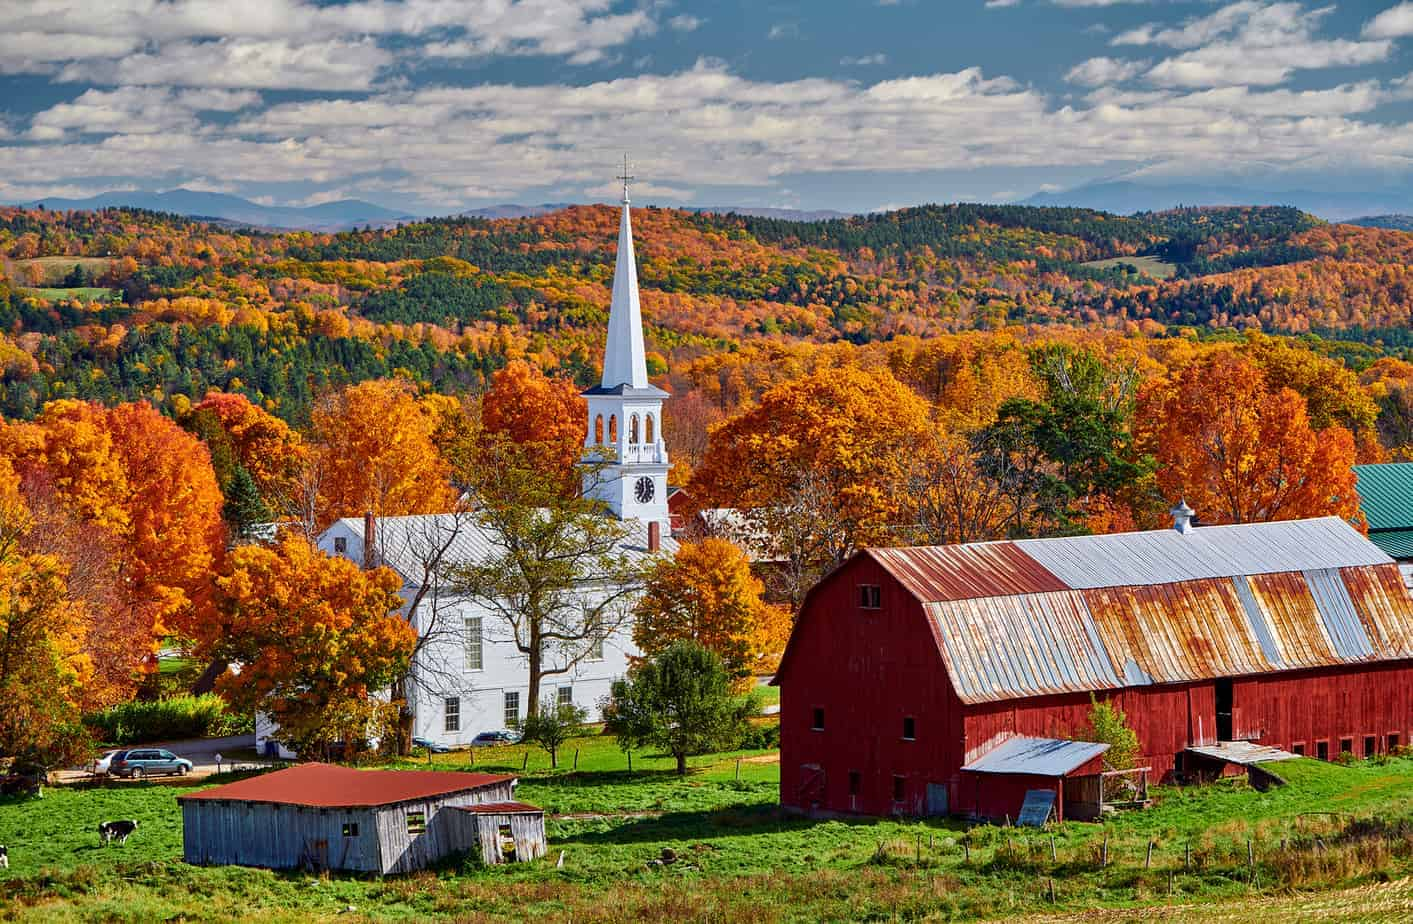 vermont weekend getaway header image - photo of iconic vermont countryside in the fall with red barn and white church steeple